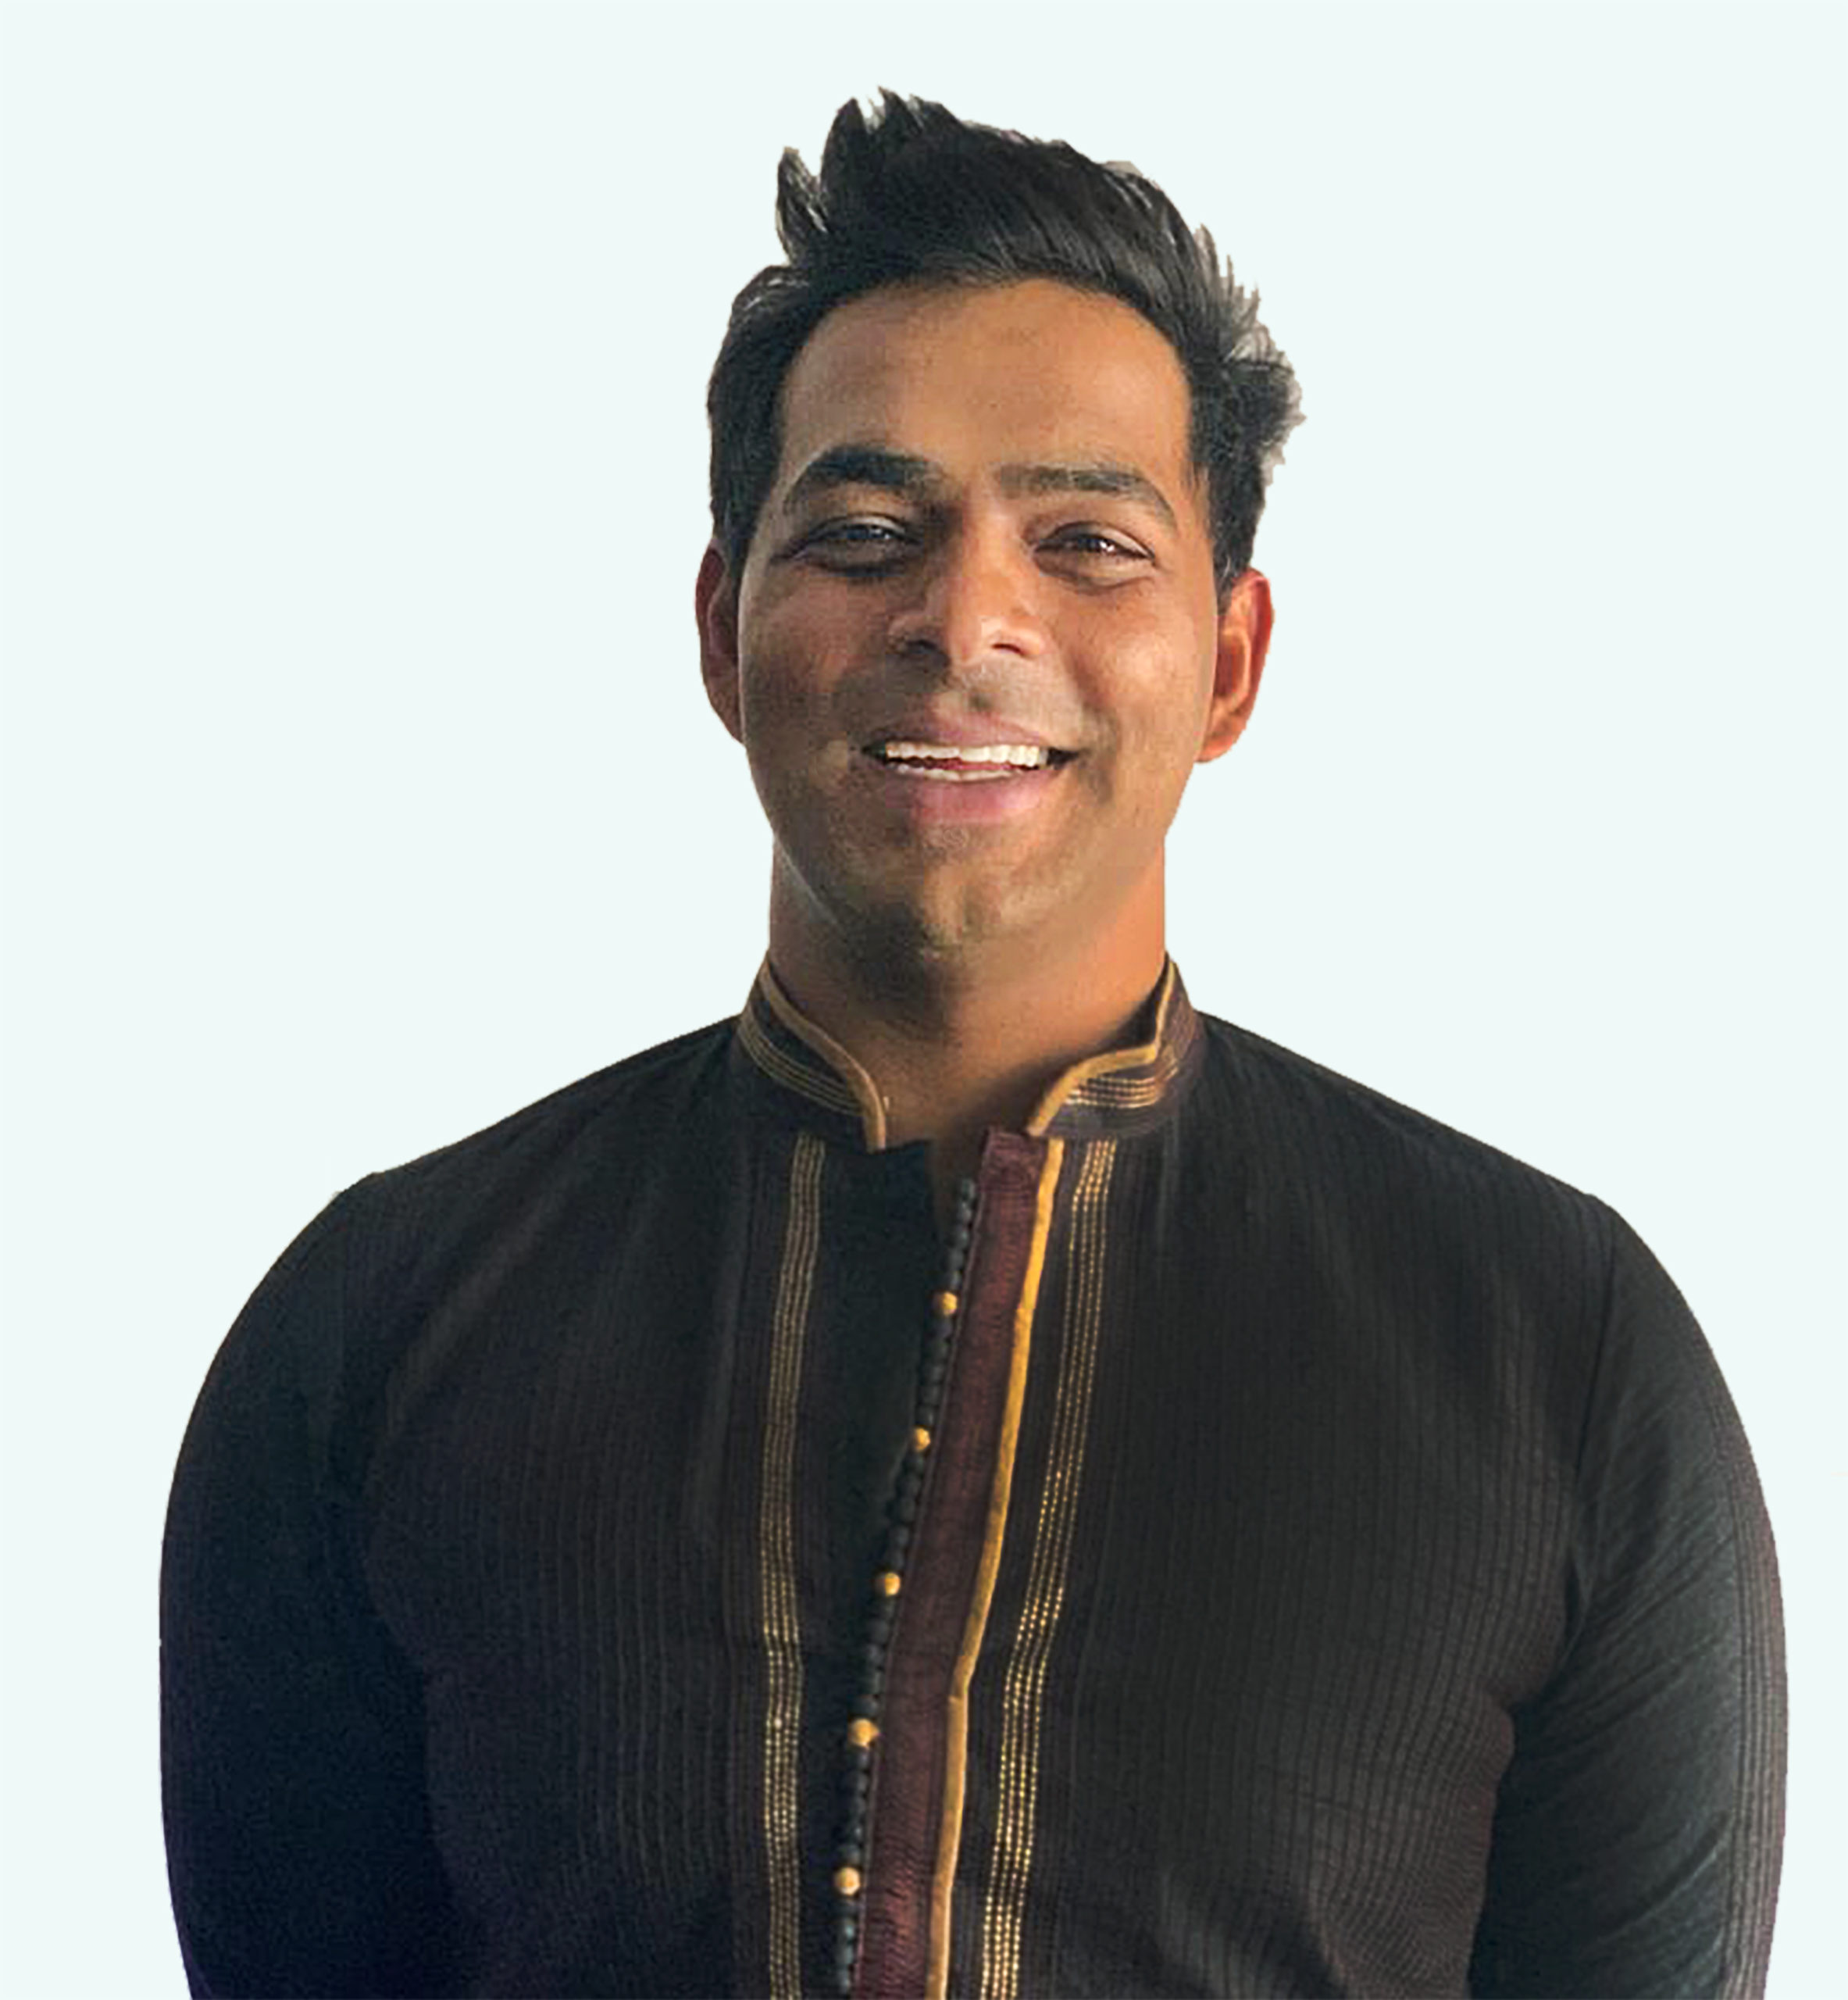 A smiling Indian man from the waist up, in a traditional black achkan sherwani with burgundy and gold trim.